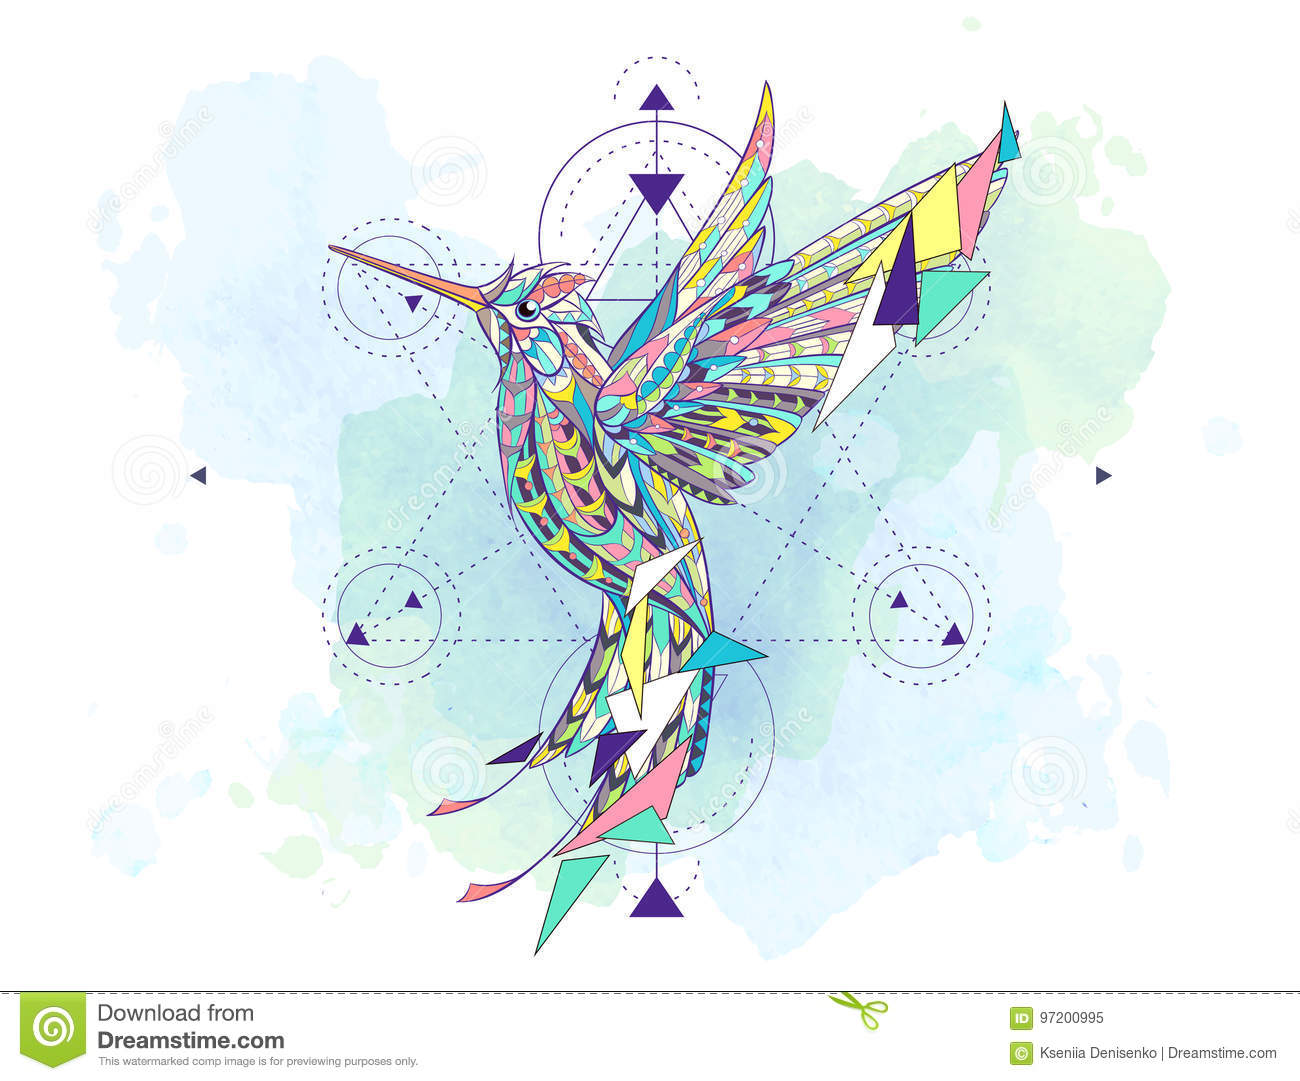 6e360dd40 Patterned hummingbird with geometry on the grunge background. African,  indian, totem, tattoo design. It may be used for design of a t-shirt, bag,  postcard, ...